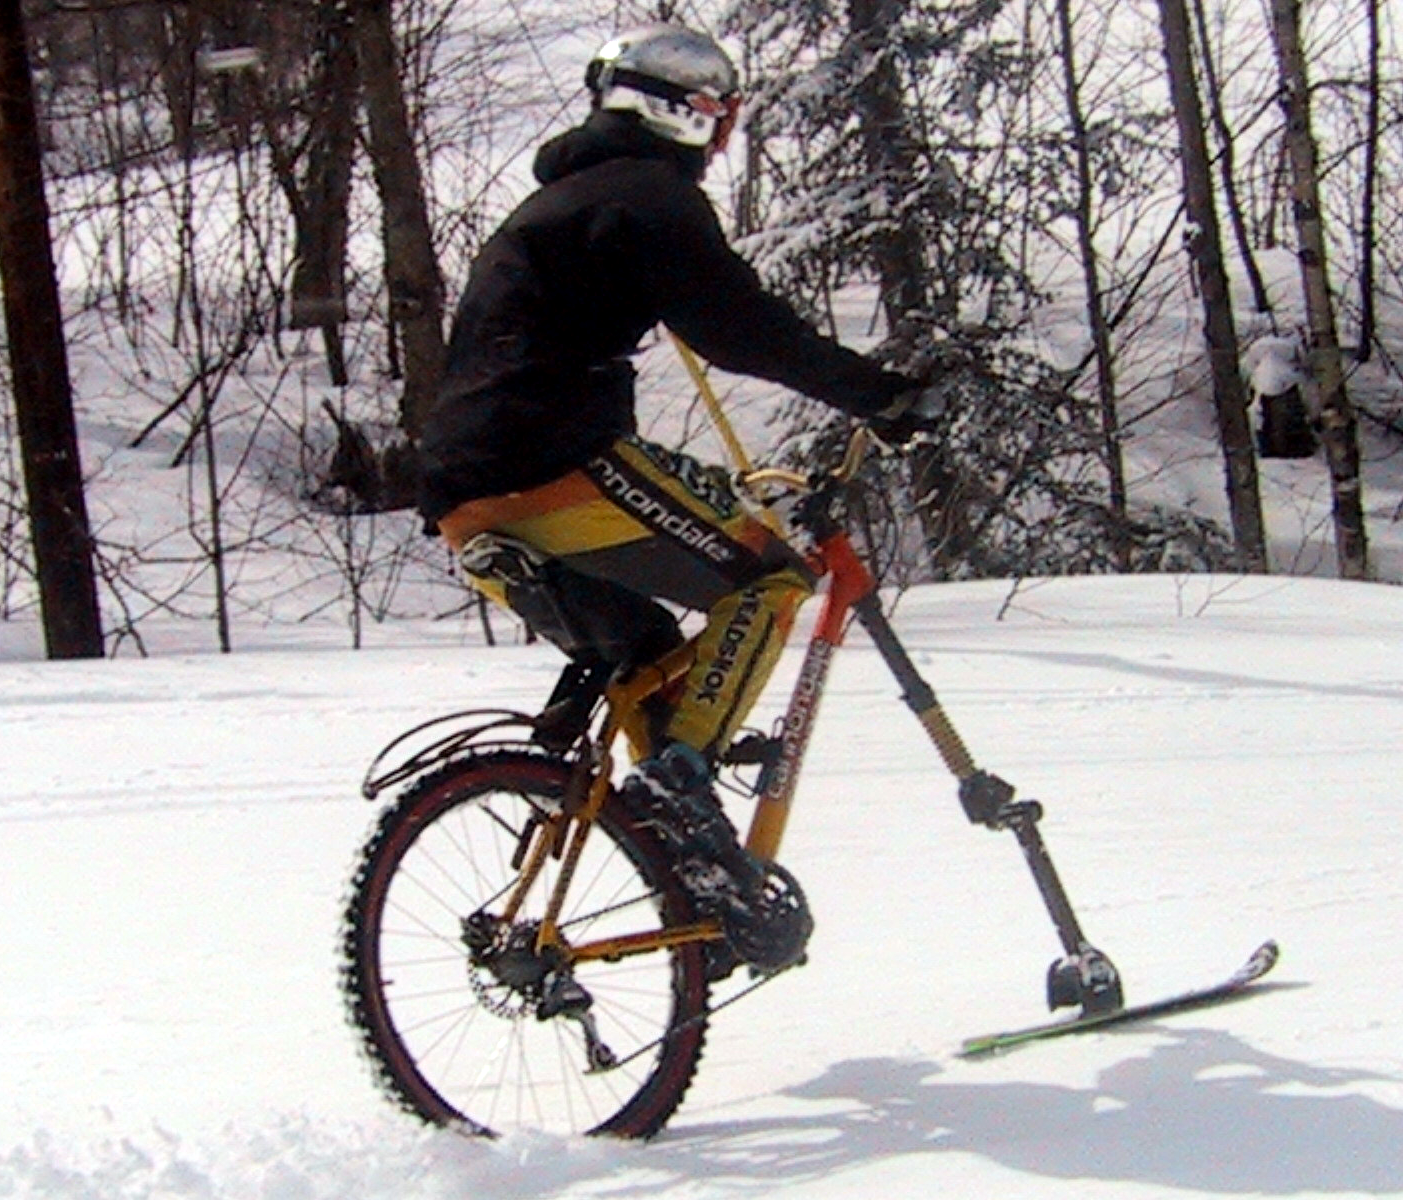 One of the original Fat Bike Skis in the mid-2000's